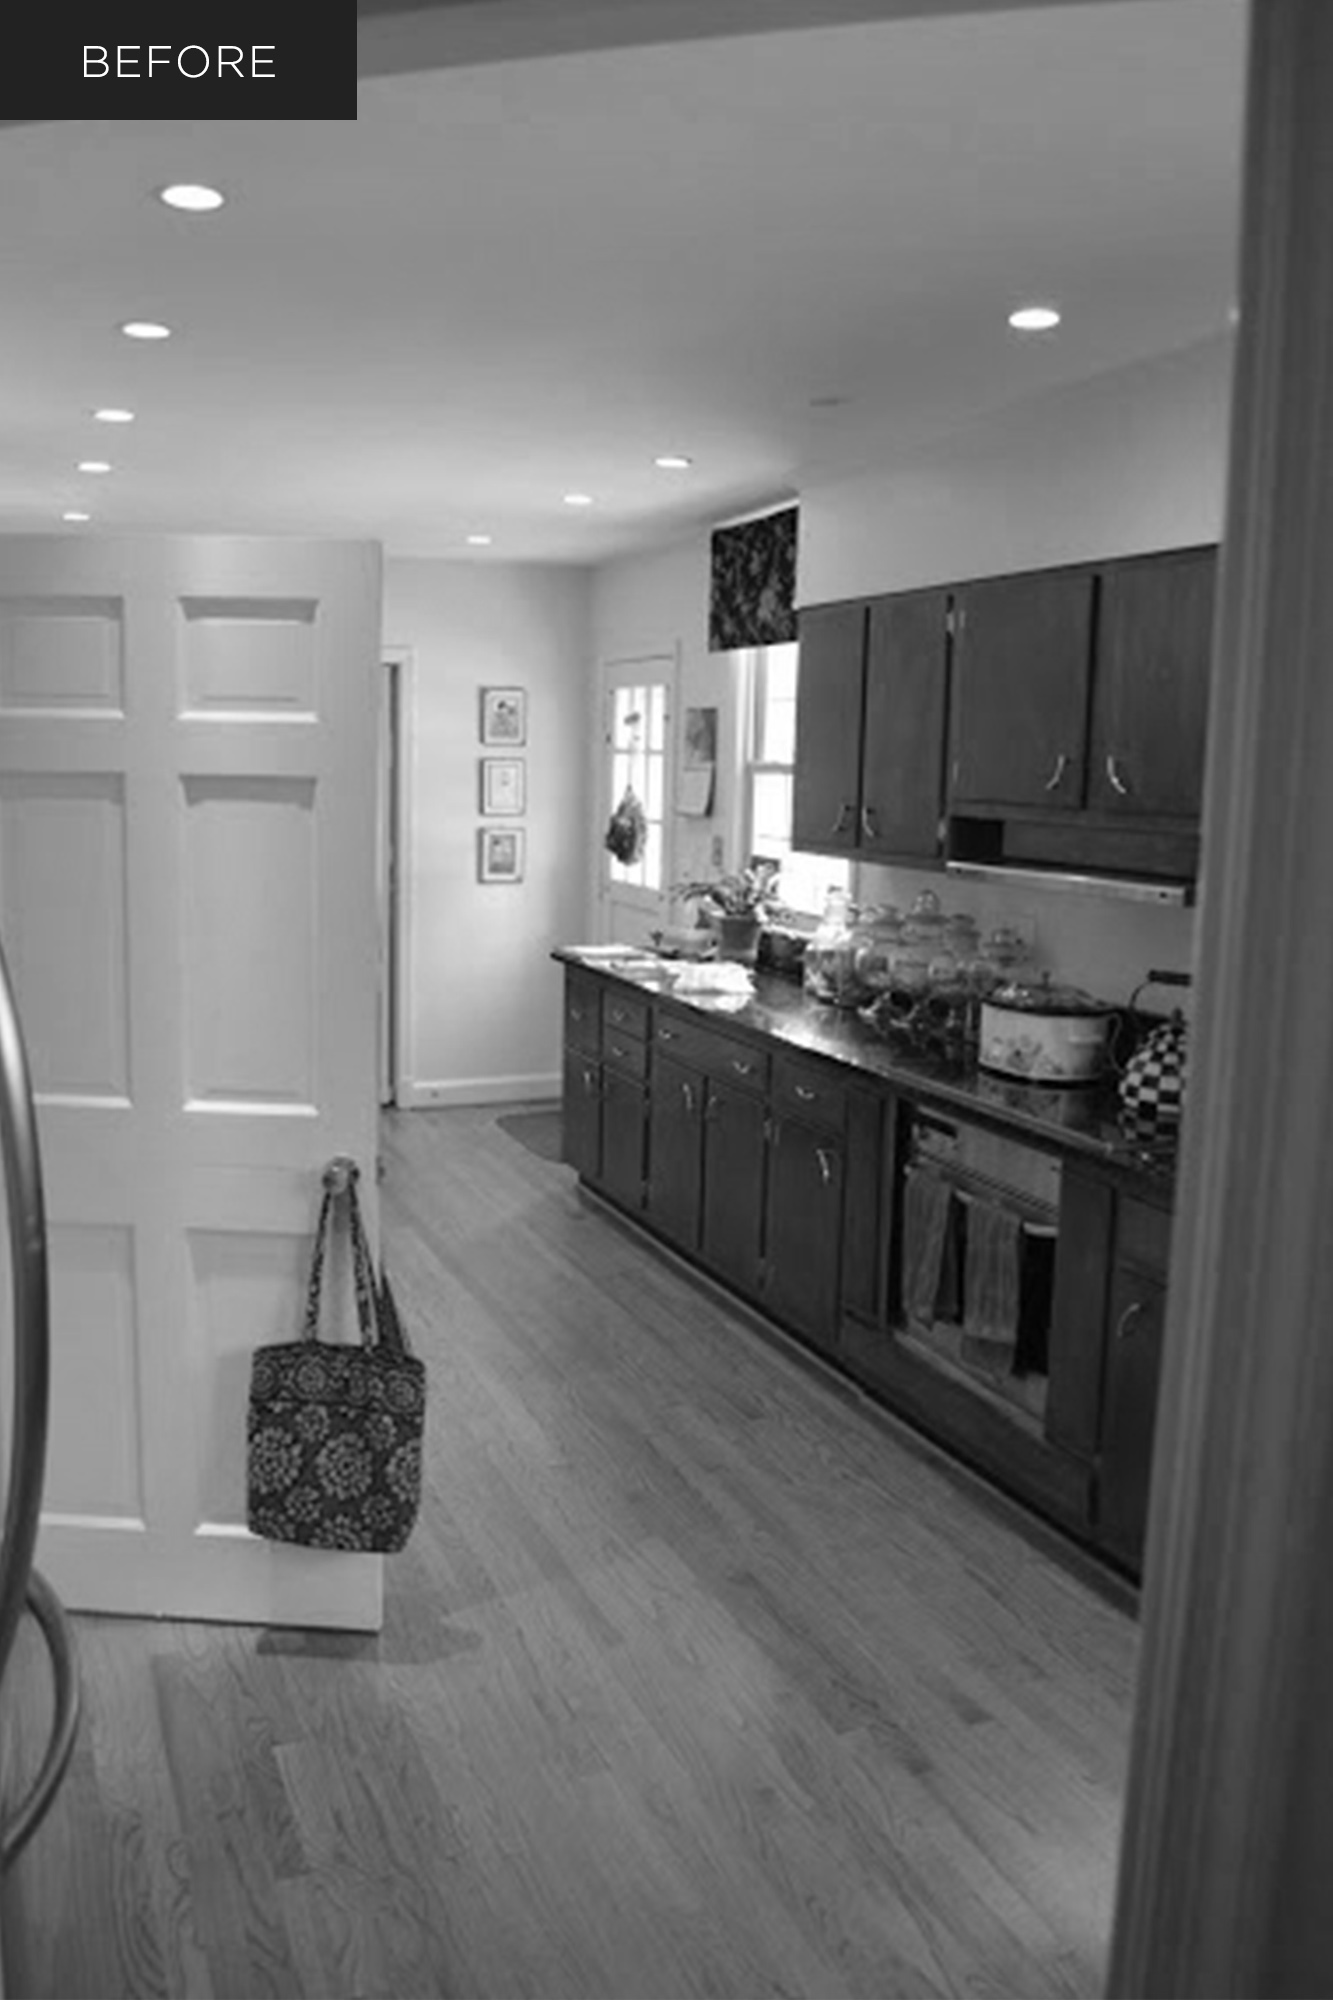 Kitchen before renovation, dark wood cabinetry, crowded galley layout